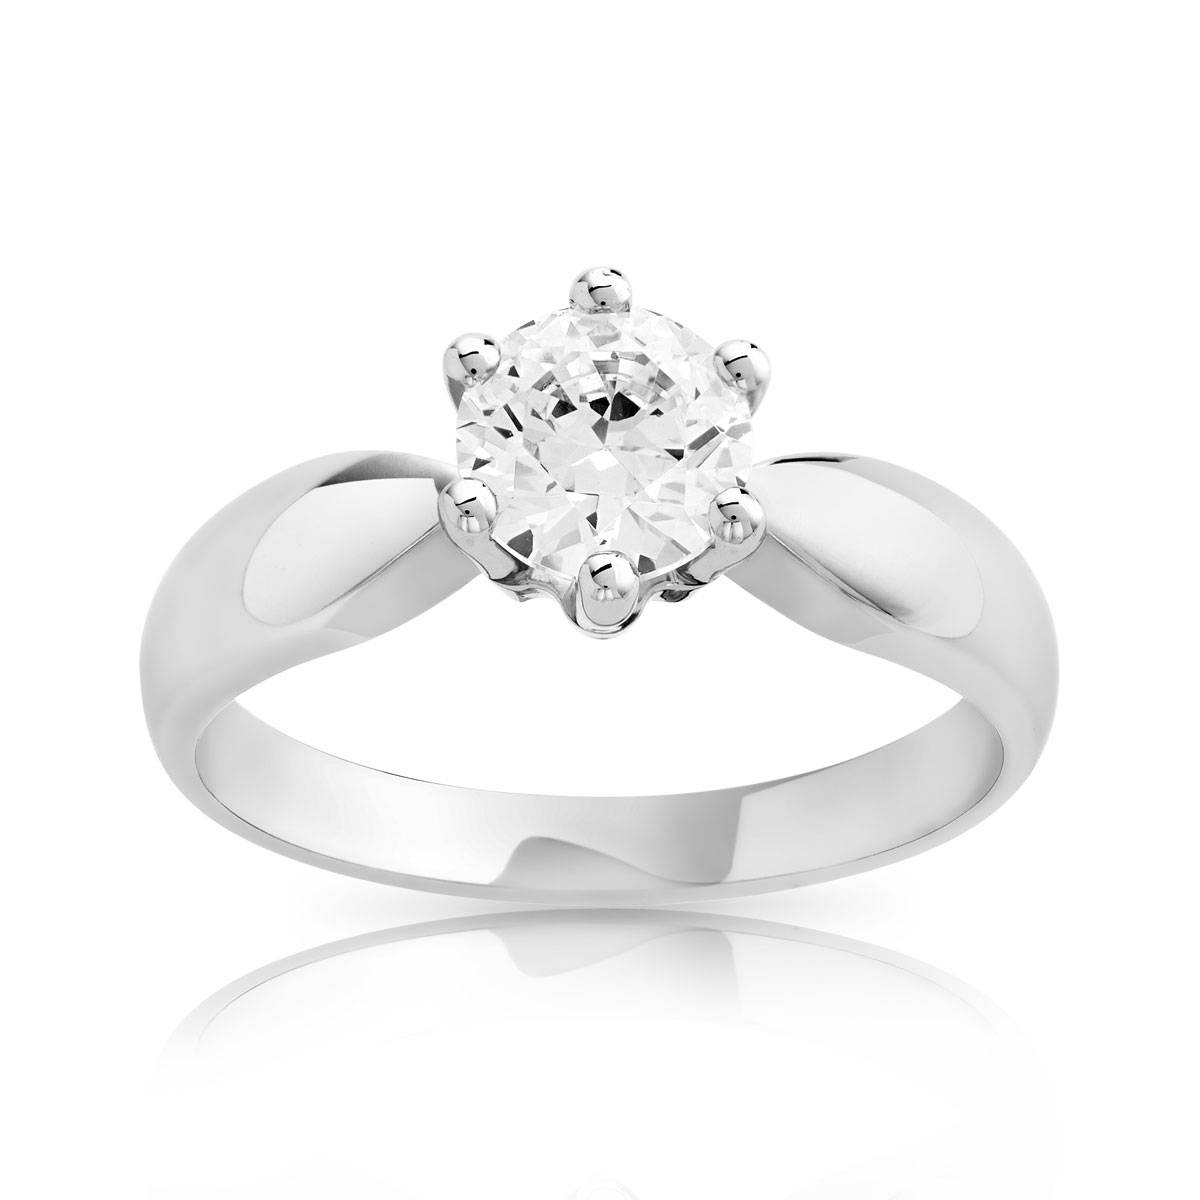 MATY Bague Solitaire or 750 blanc diamant synthétique 0.80 carat- MATY